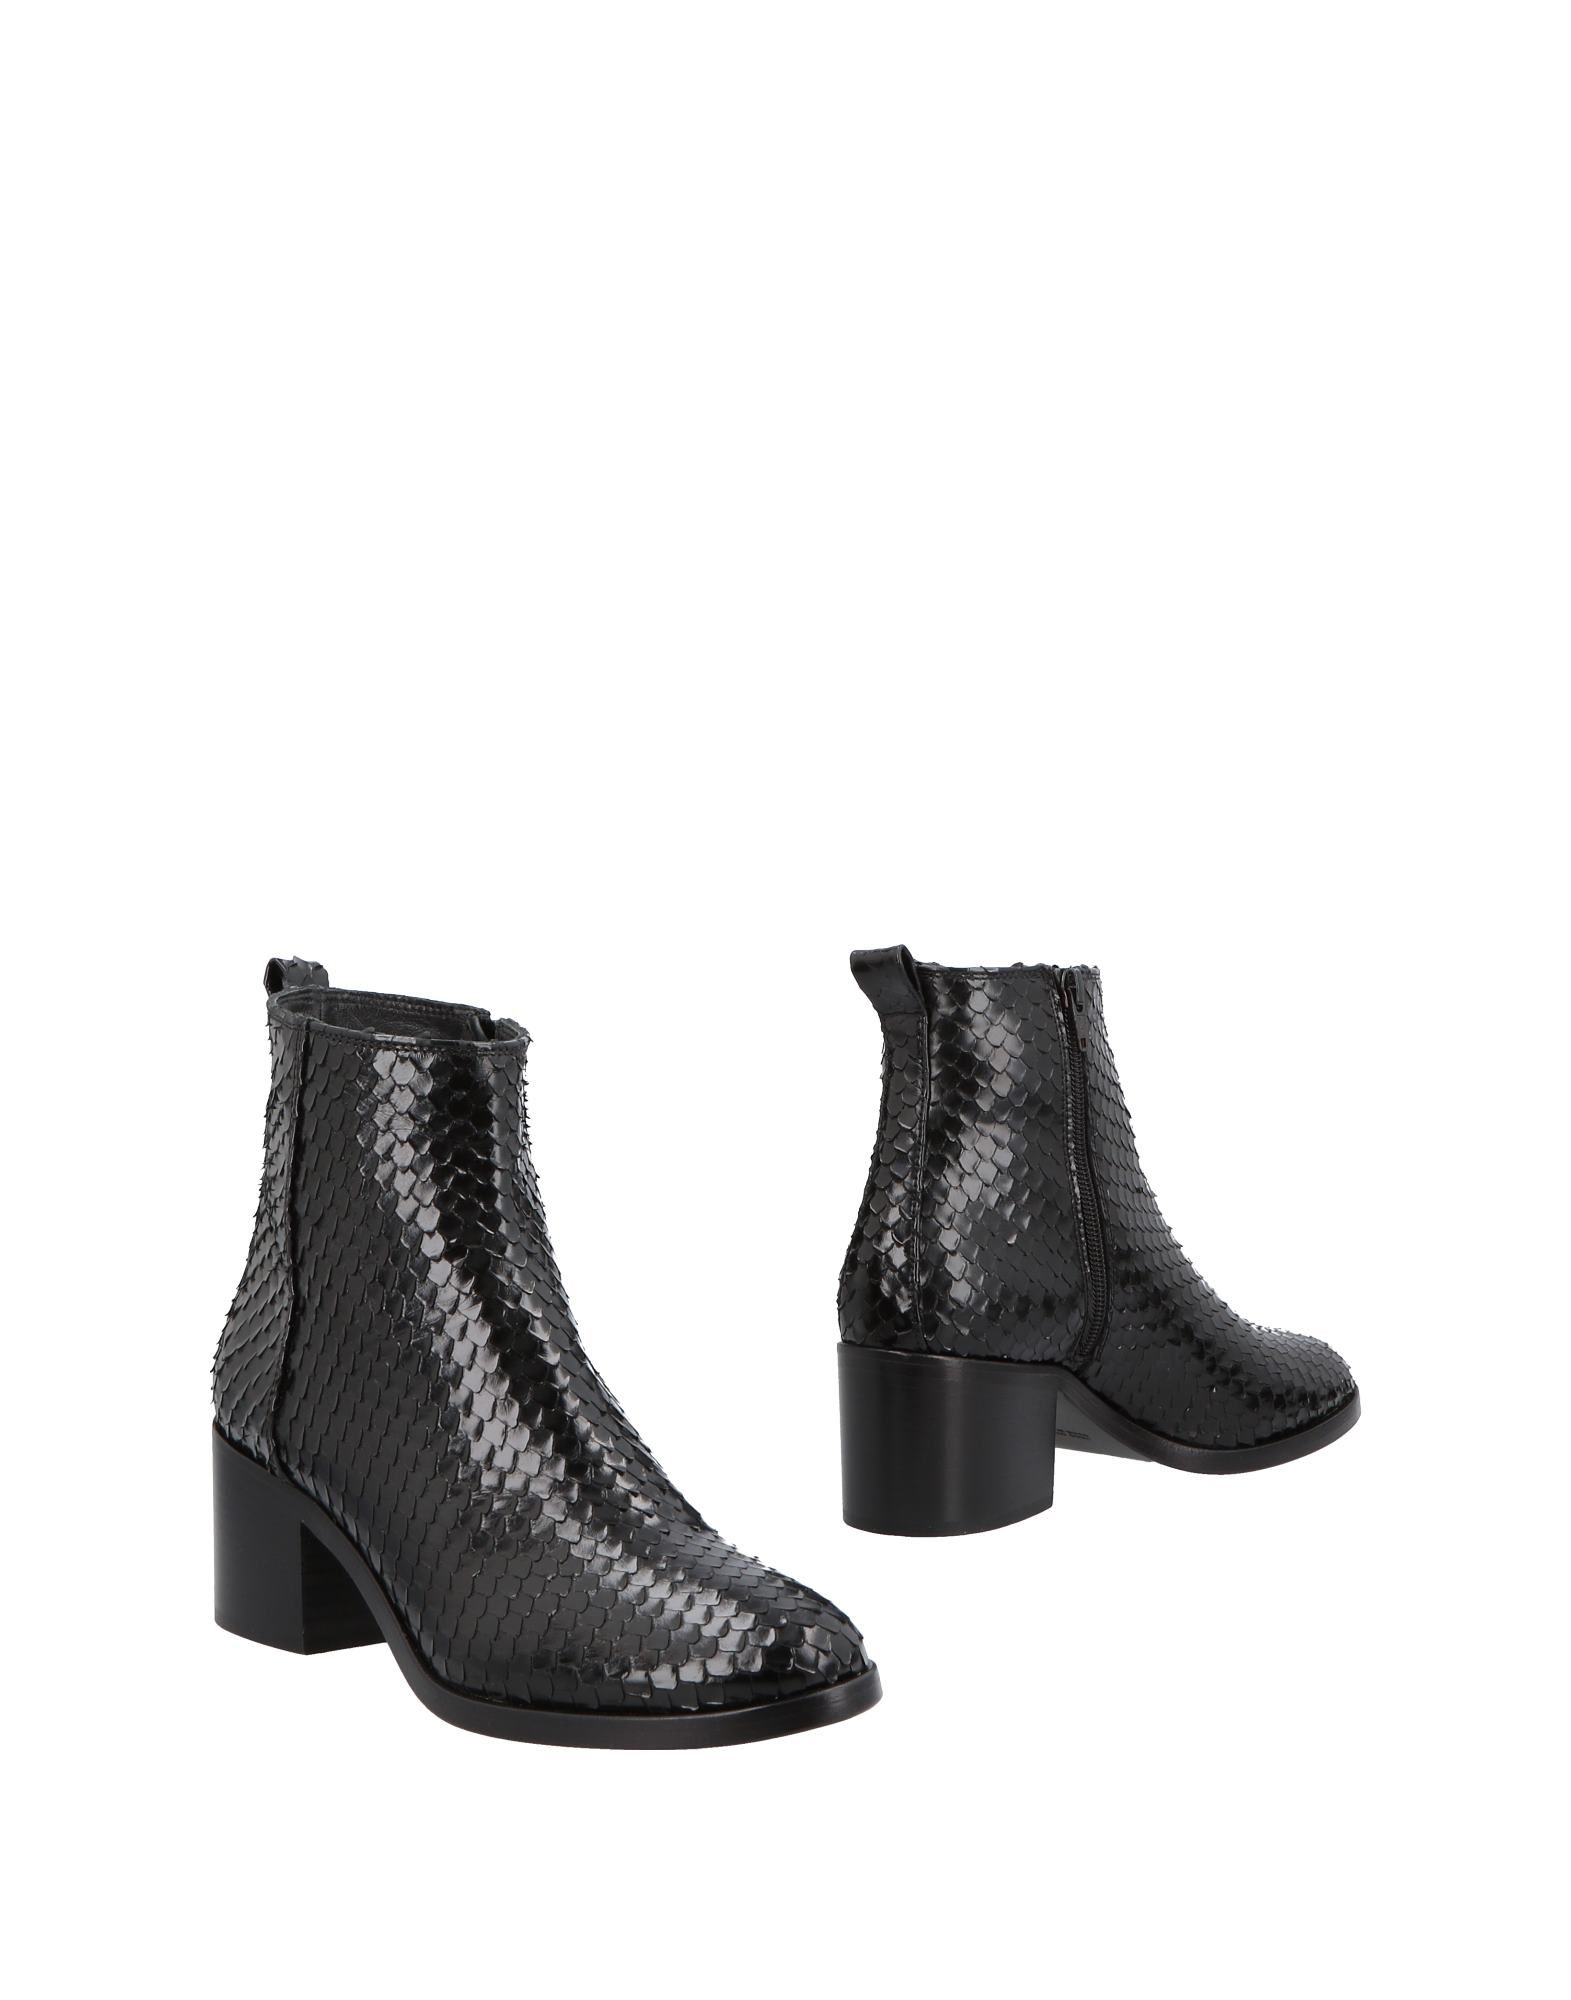 Strategia Ankle Ankle Boot - Women Strategia Ankle Ankle Boots online on  Canada - 11502726WM 81673e